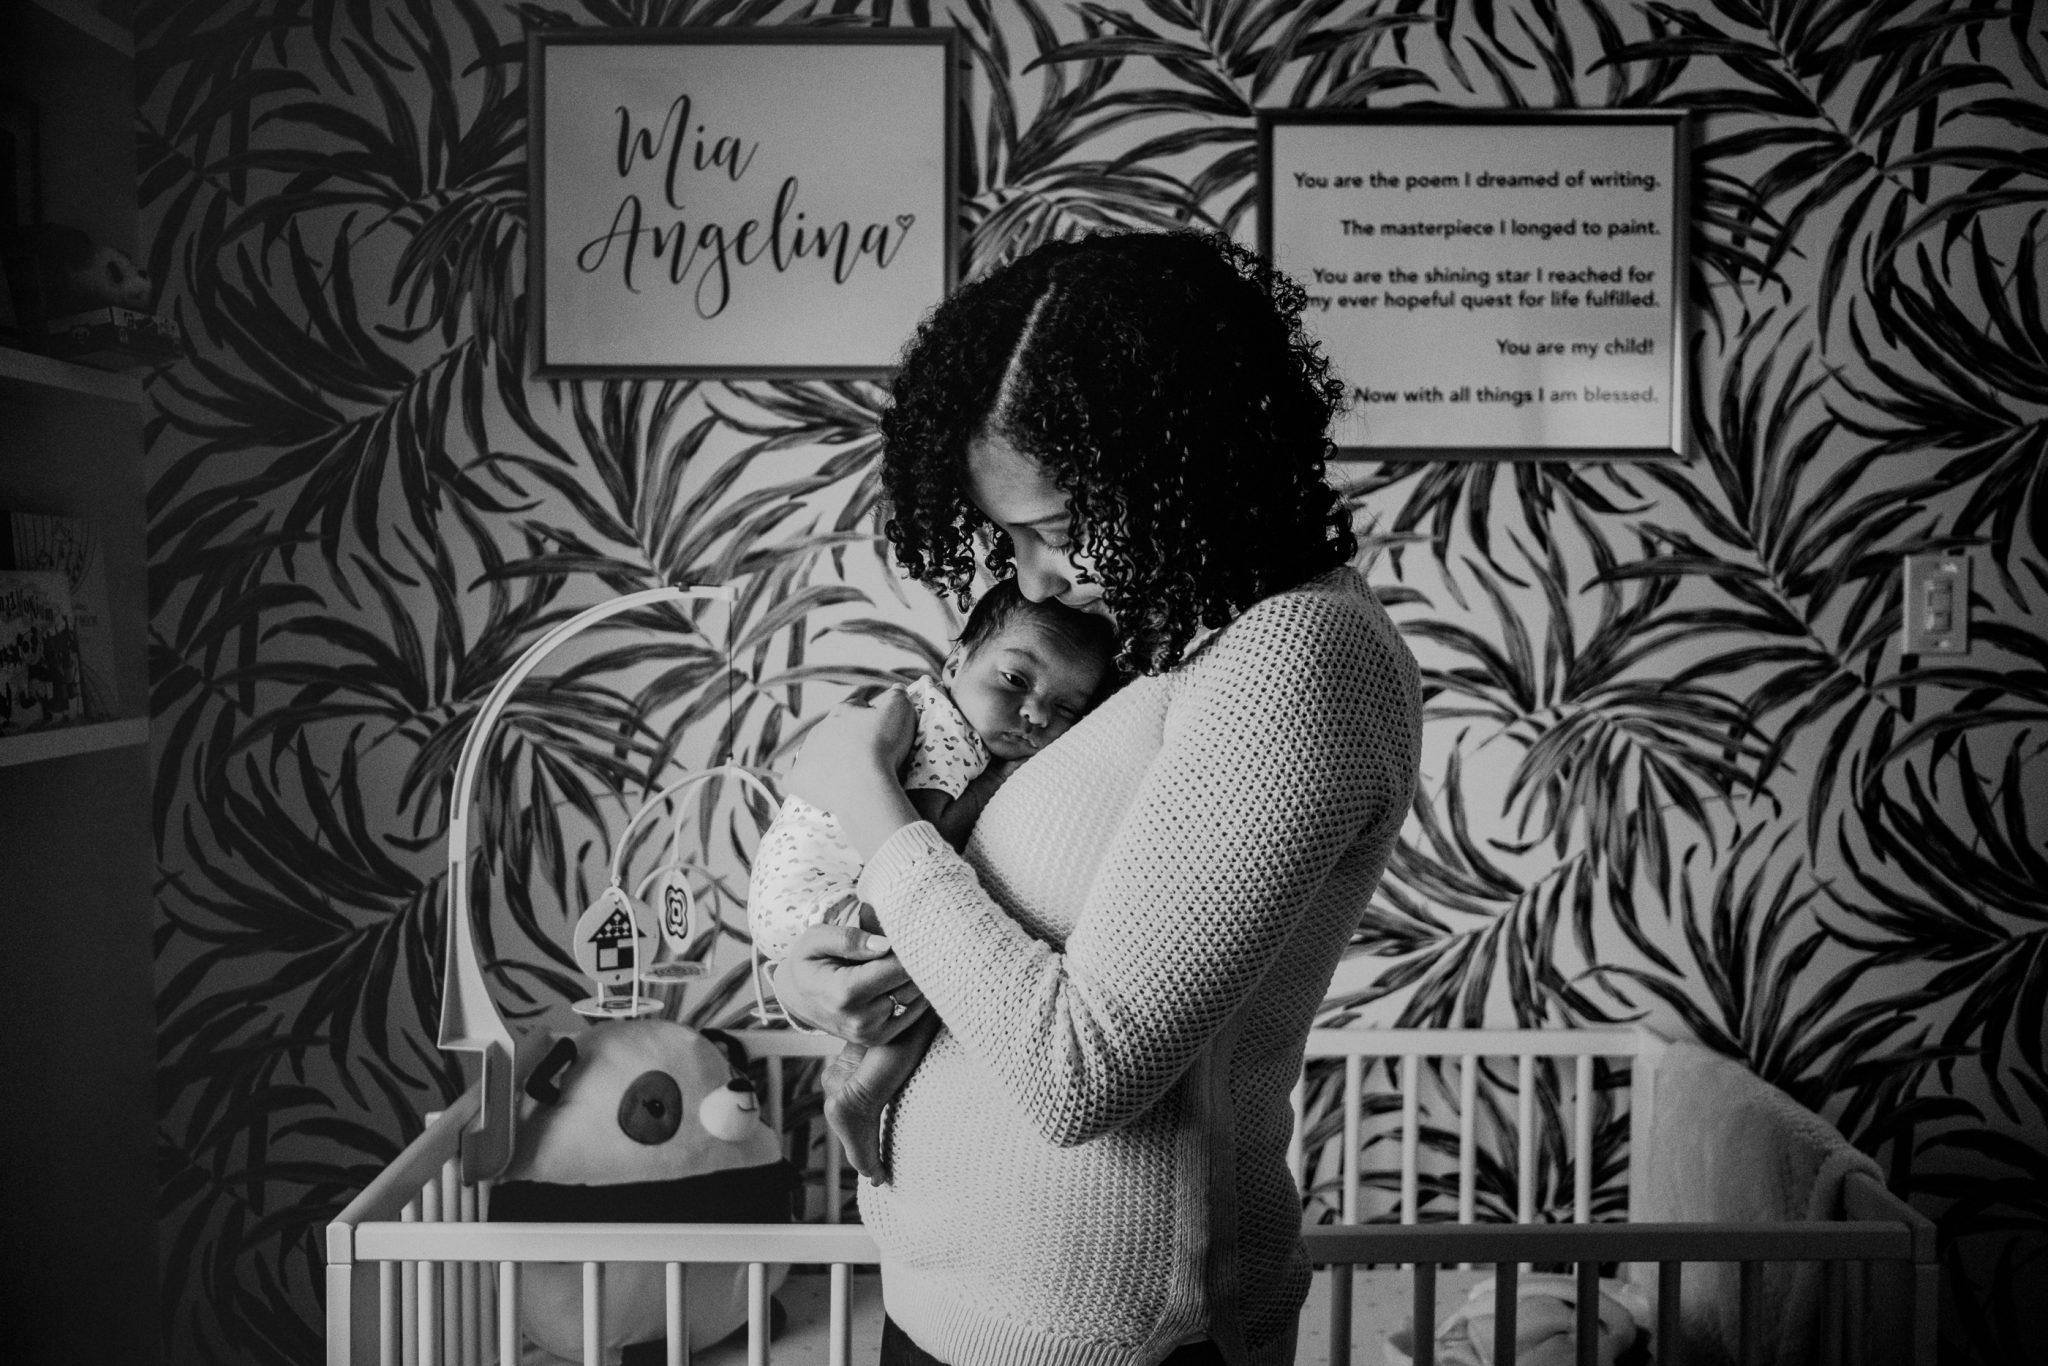 mother daughter photo in newborn baby's bedroom in black and white